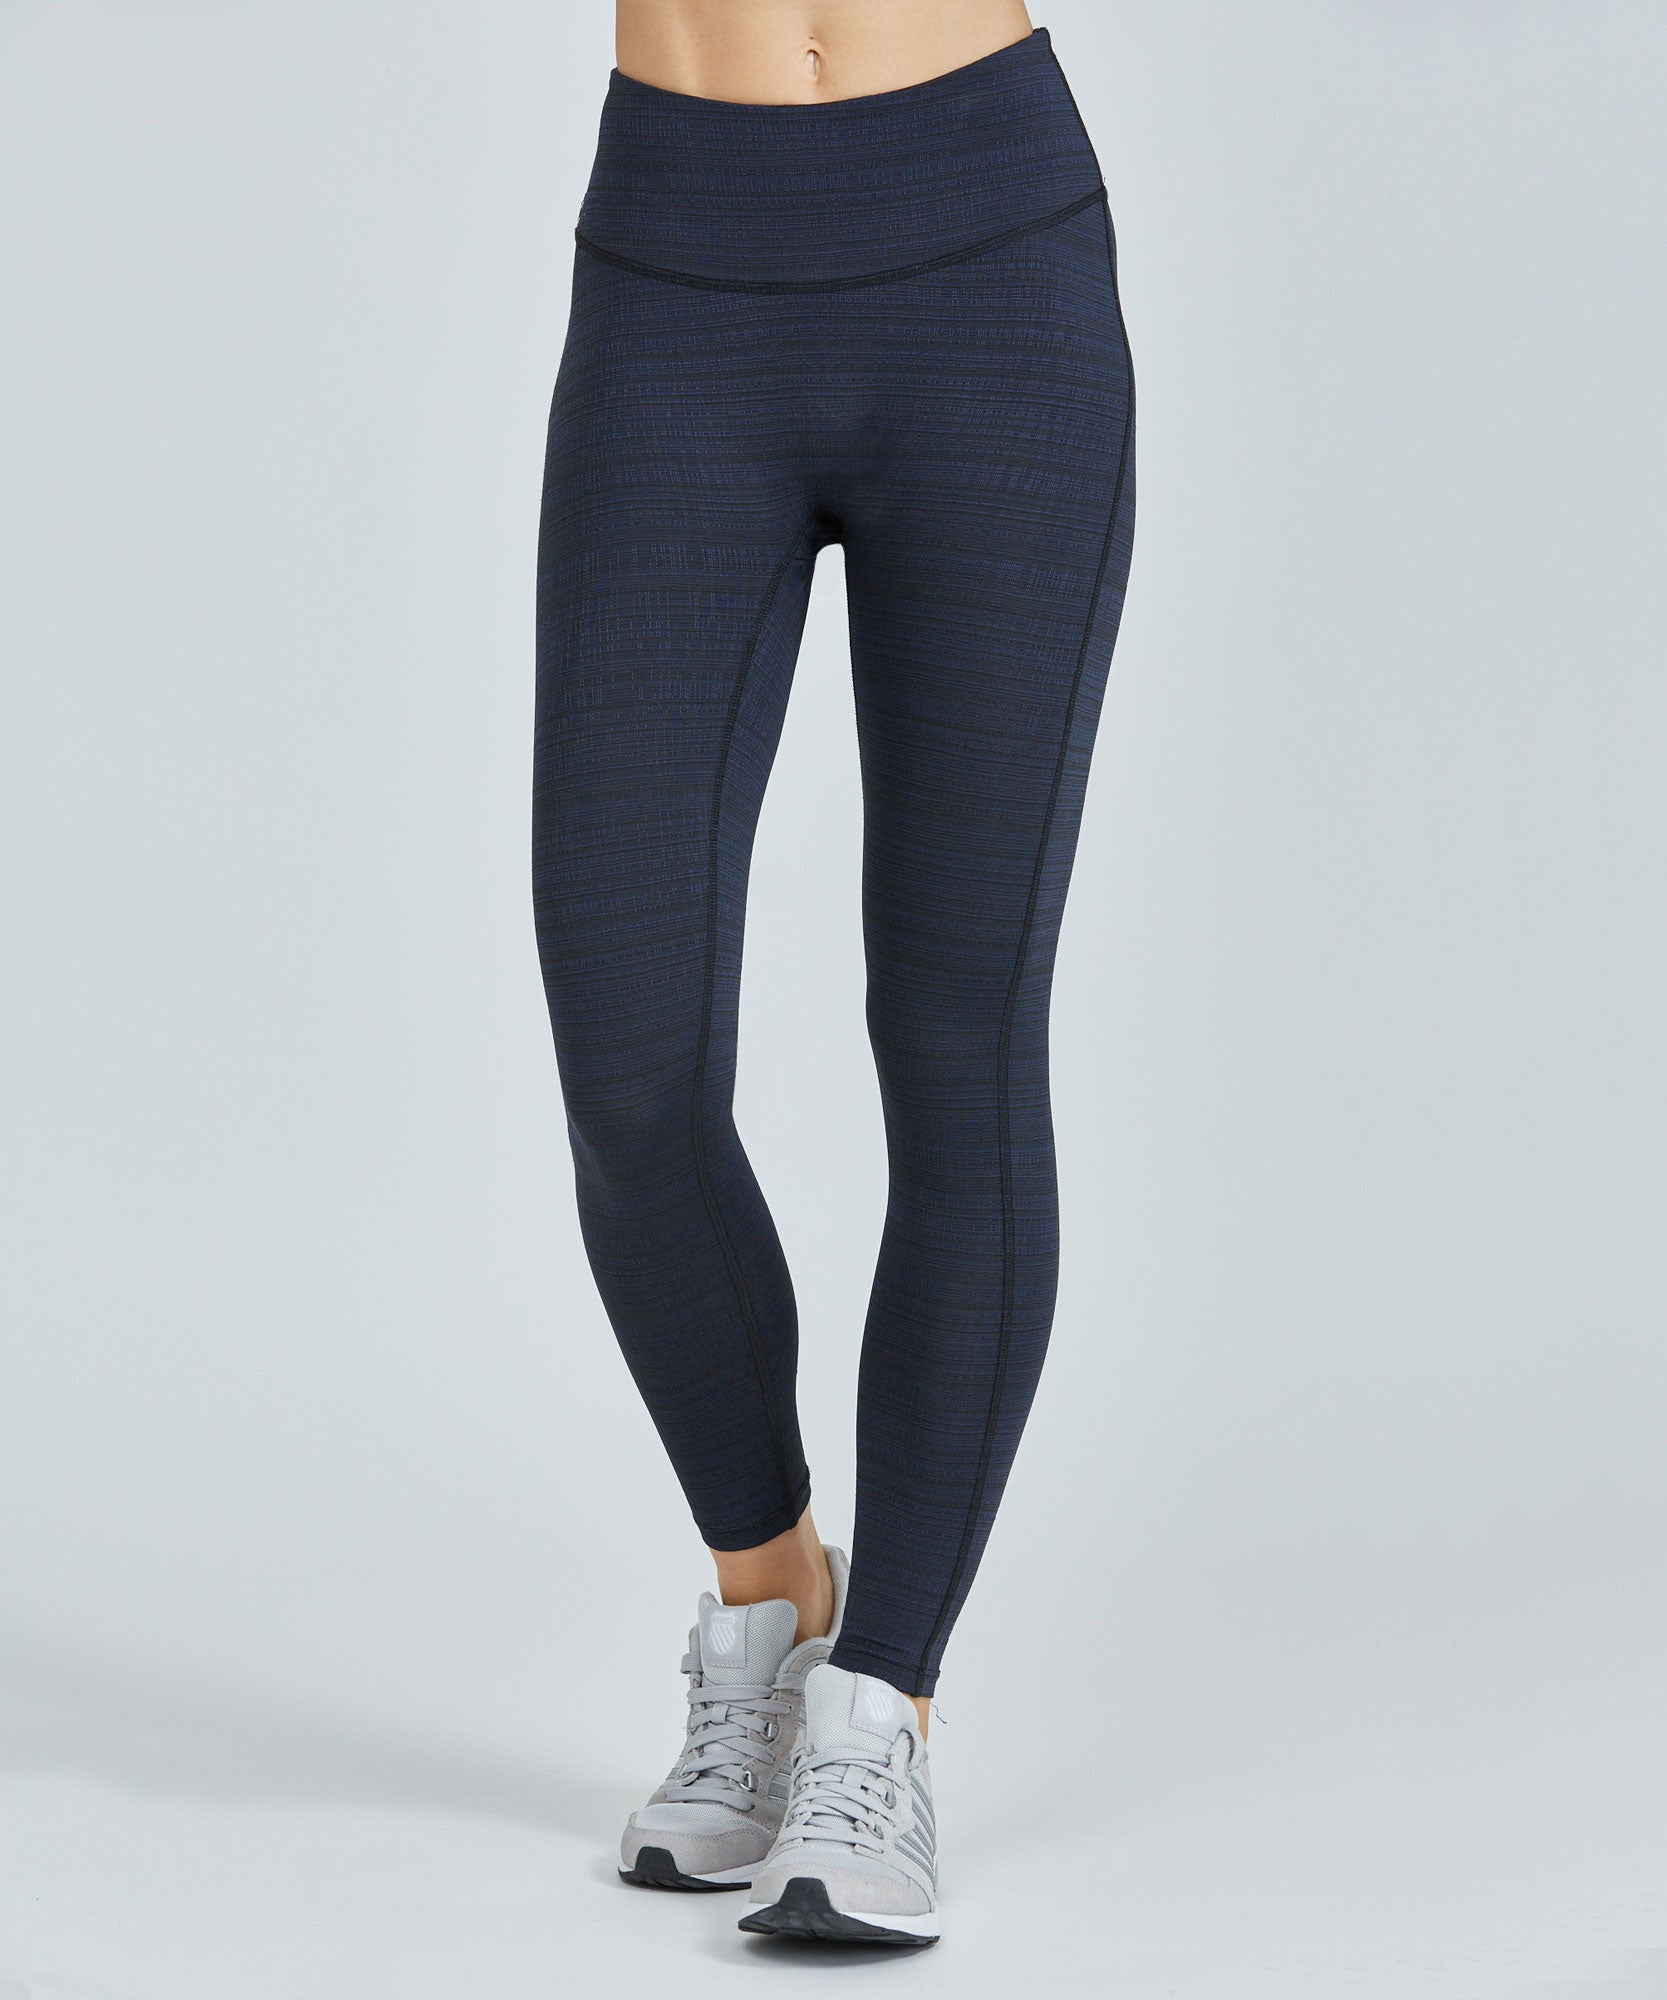 Hi-Waist Barre 7/8 Legging - Black